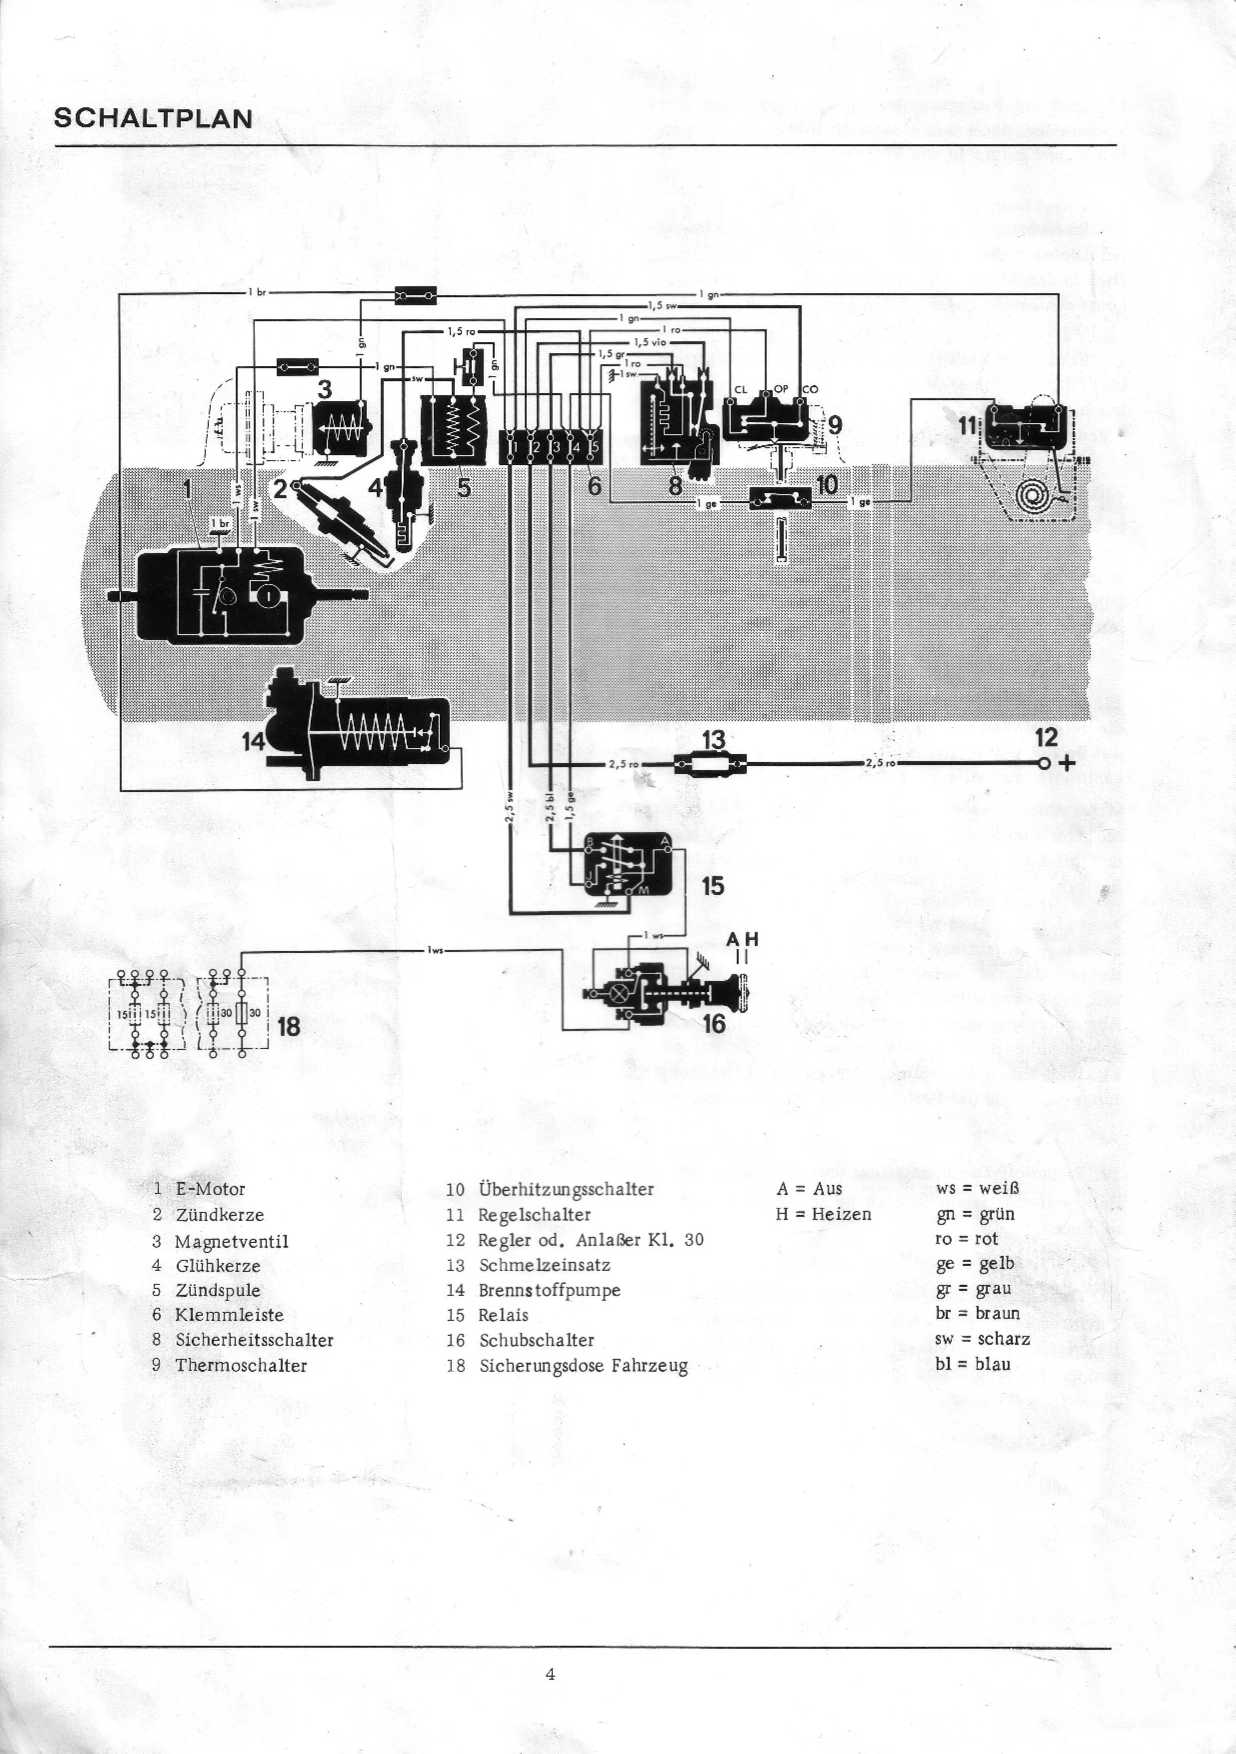 1970 10 eberspaecher bn4 wiring diagram?resize\=665%2C944 1970 mach 1 wiring diagram 1970 mach 1 exhaust, 1970 mach 1 door 1970 ford mustang wiring diagram at n-0.co